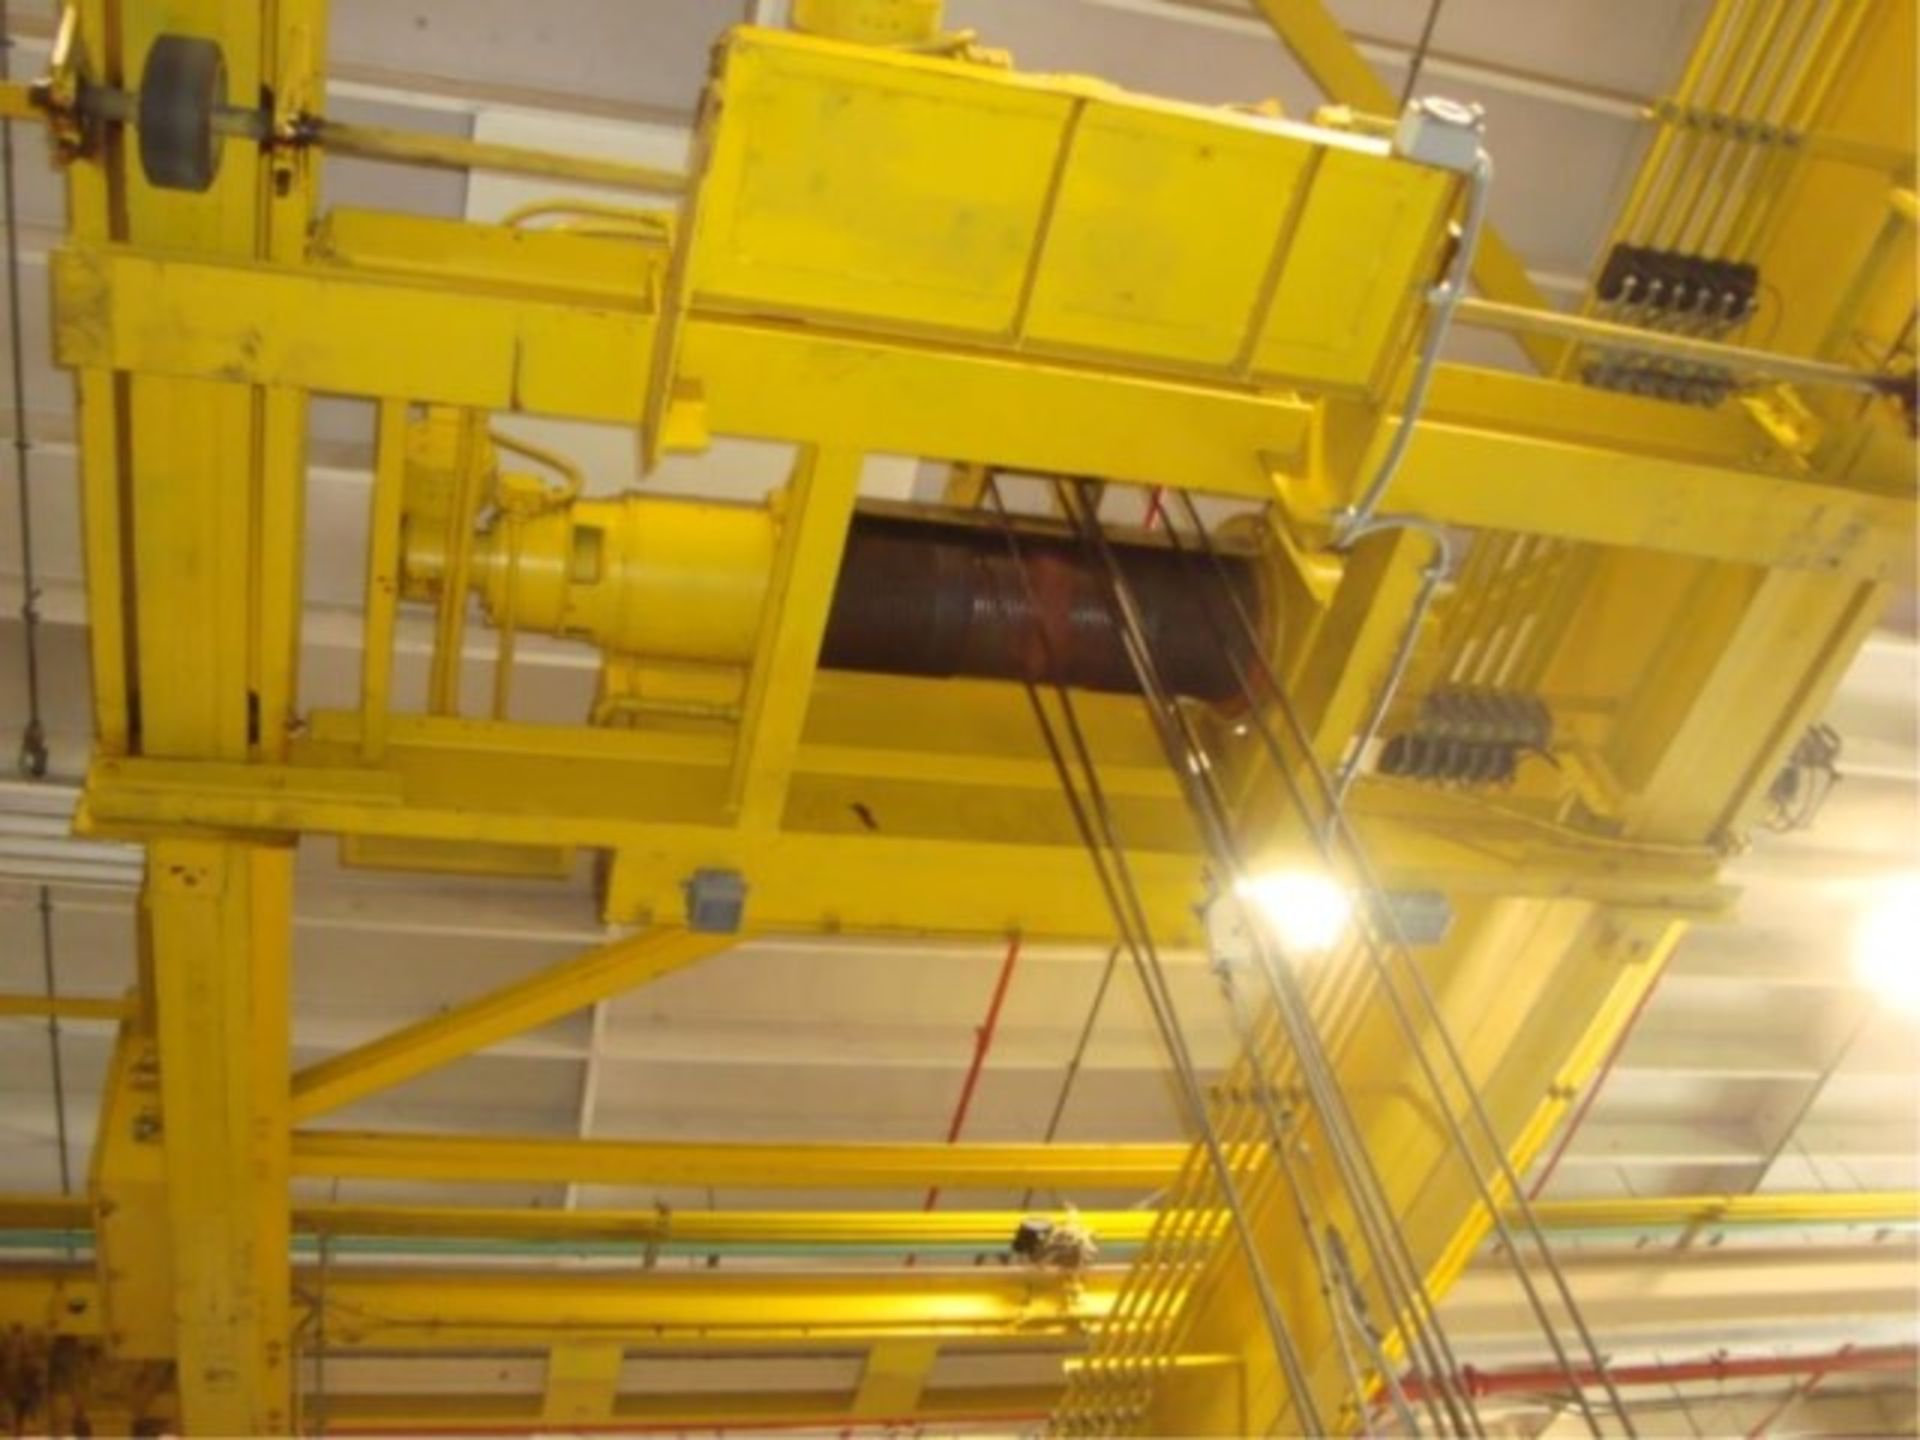 Lot 116 - 10-Ton Capacity Overhead Bridge Crane